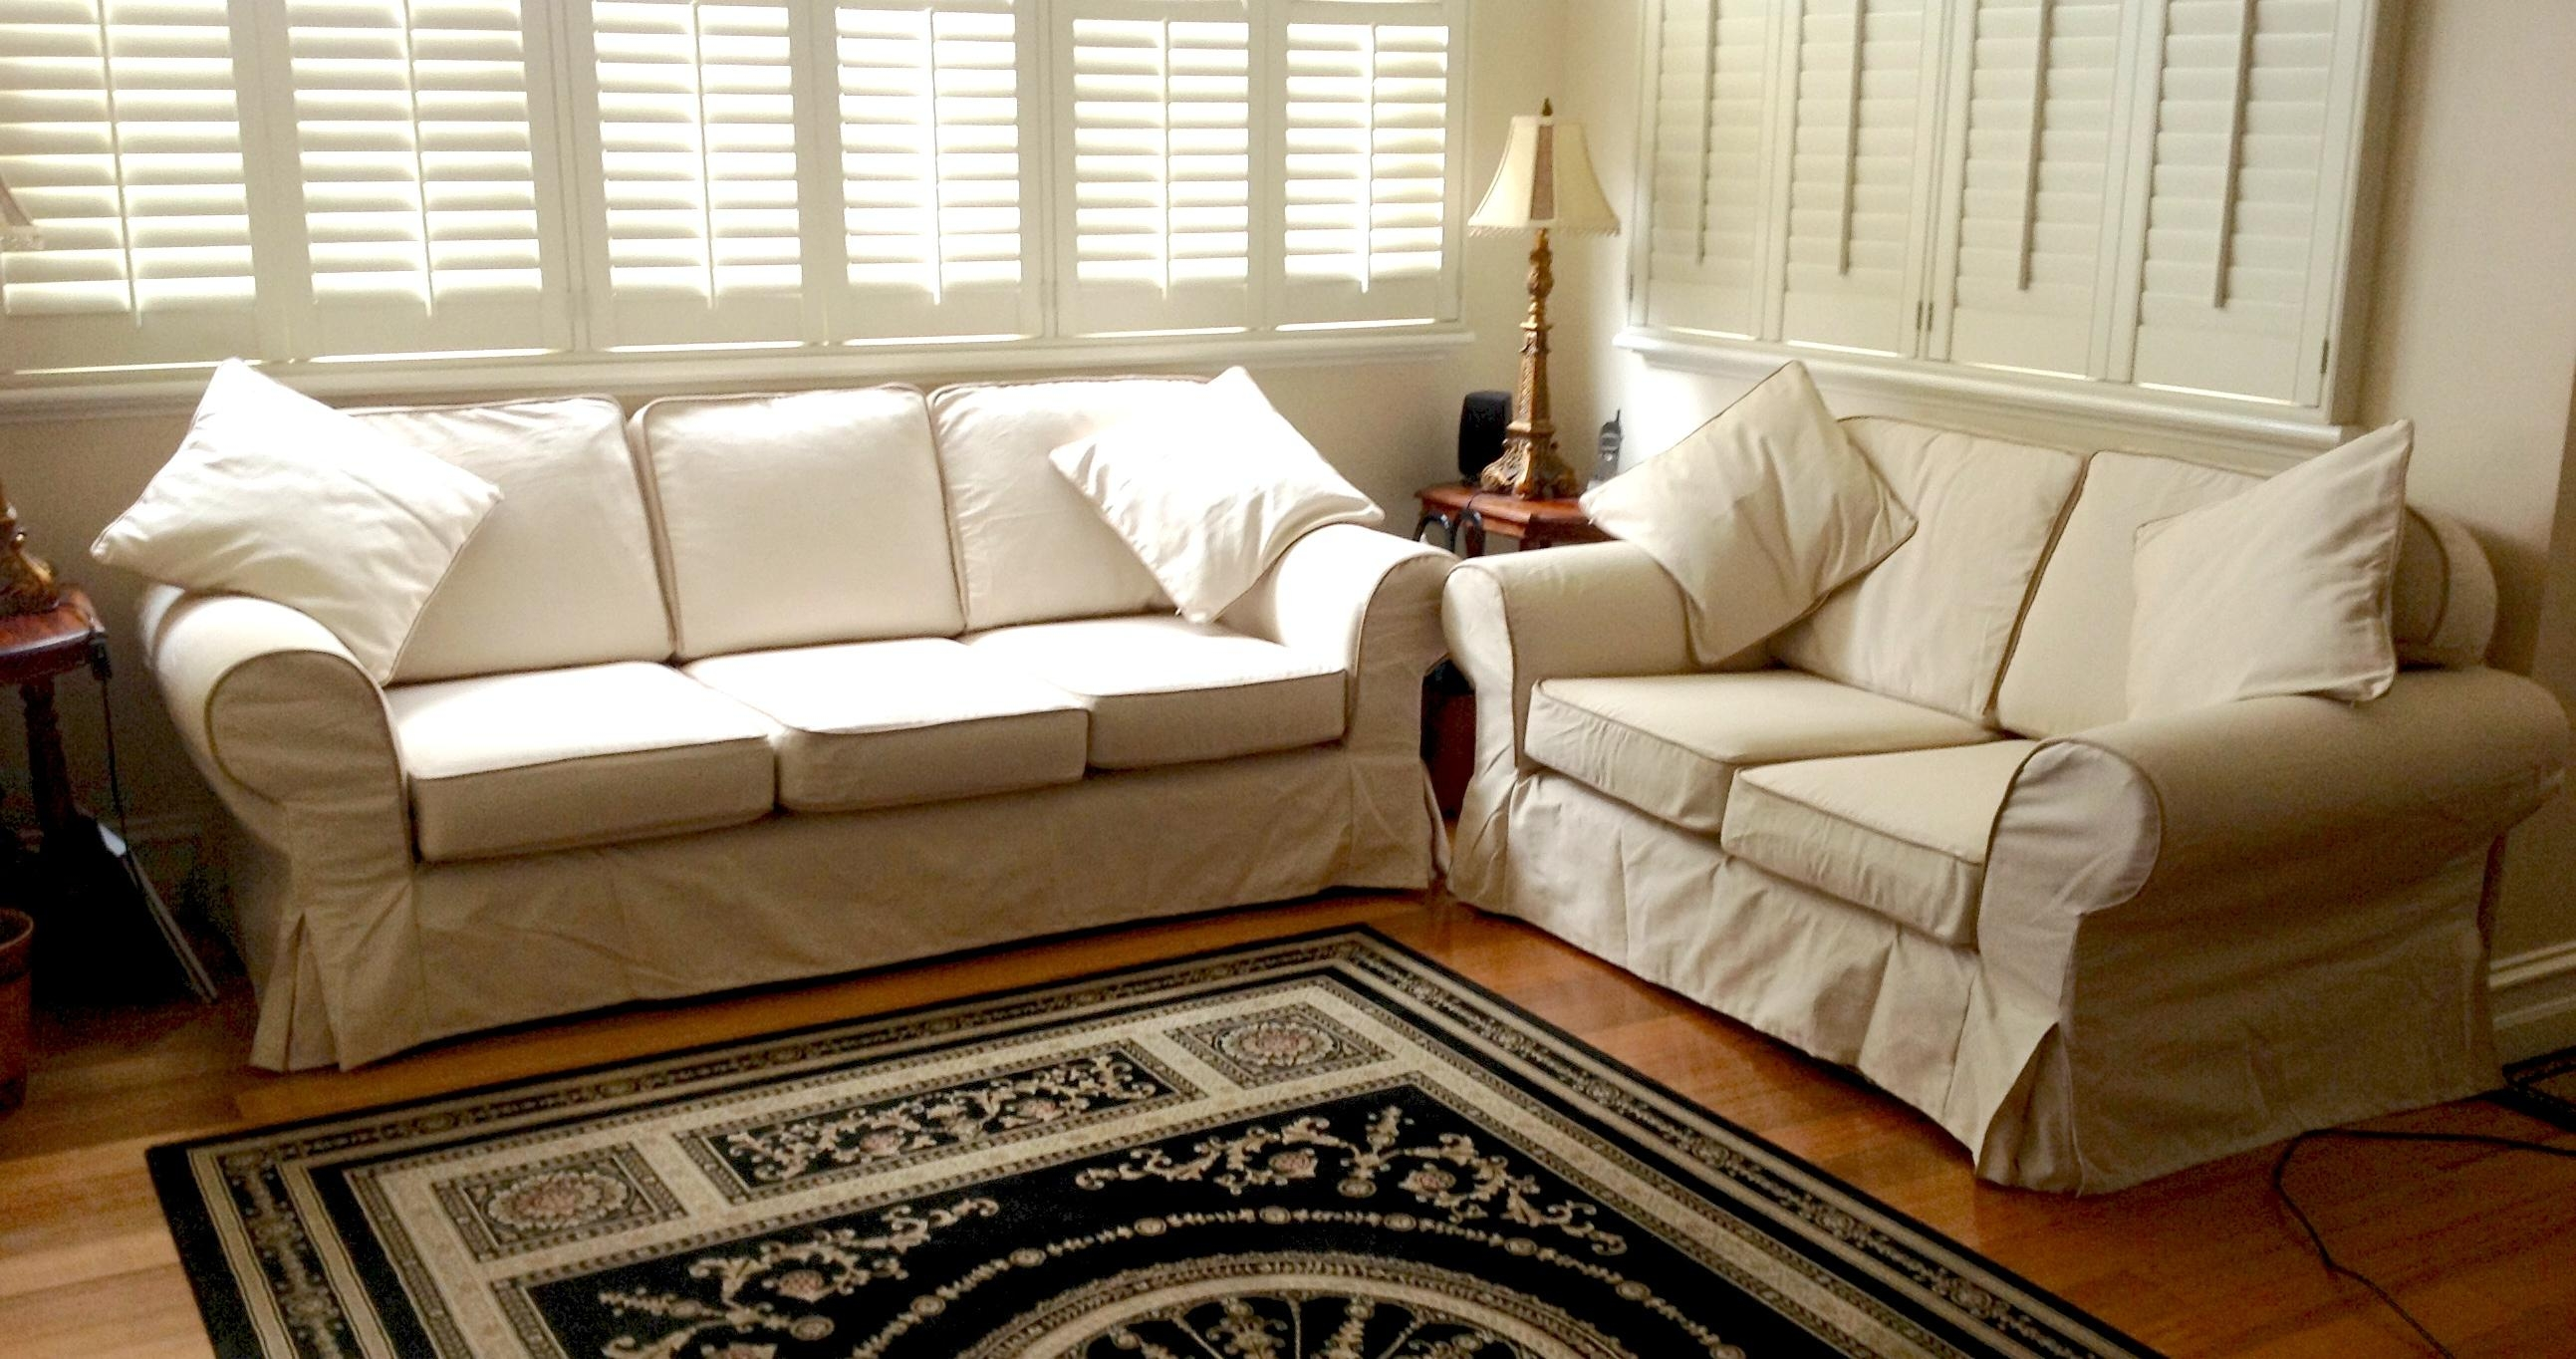 Custom Slipcovers And Couch Cover For Any Sofa Online For Slipcover For Leather Sofas (Image 10 of 20)